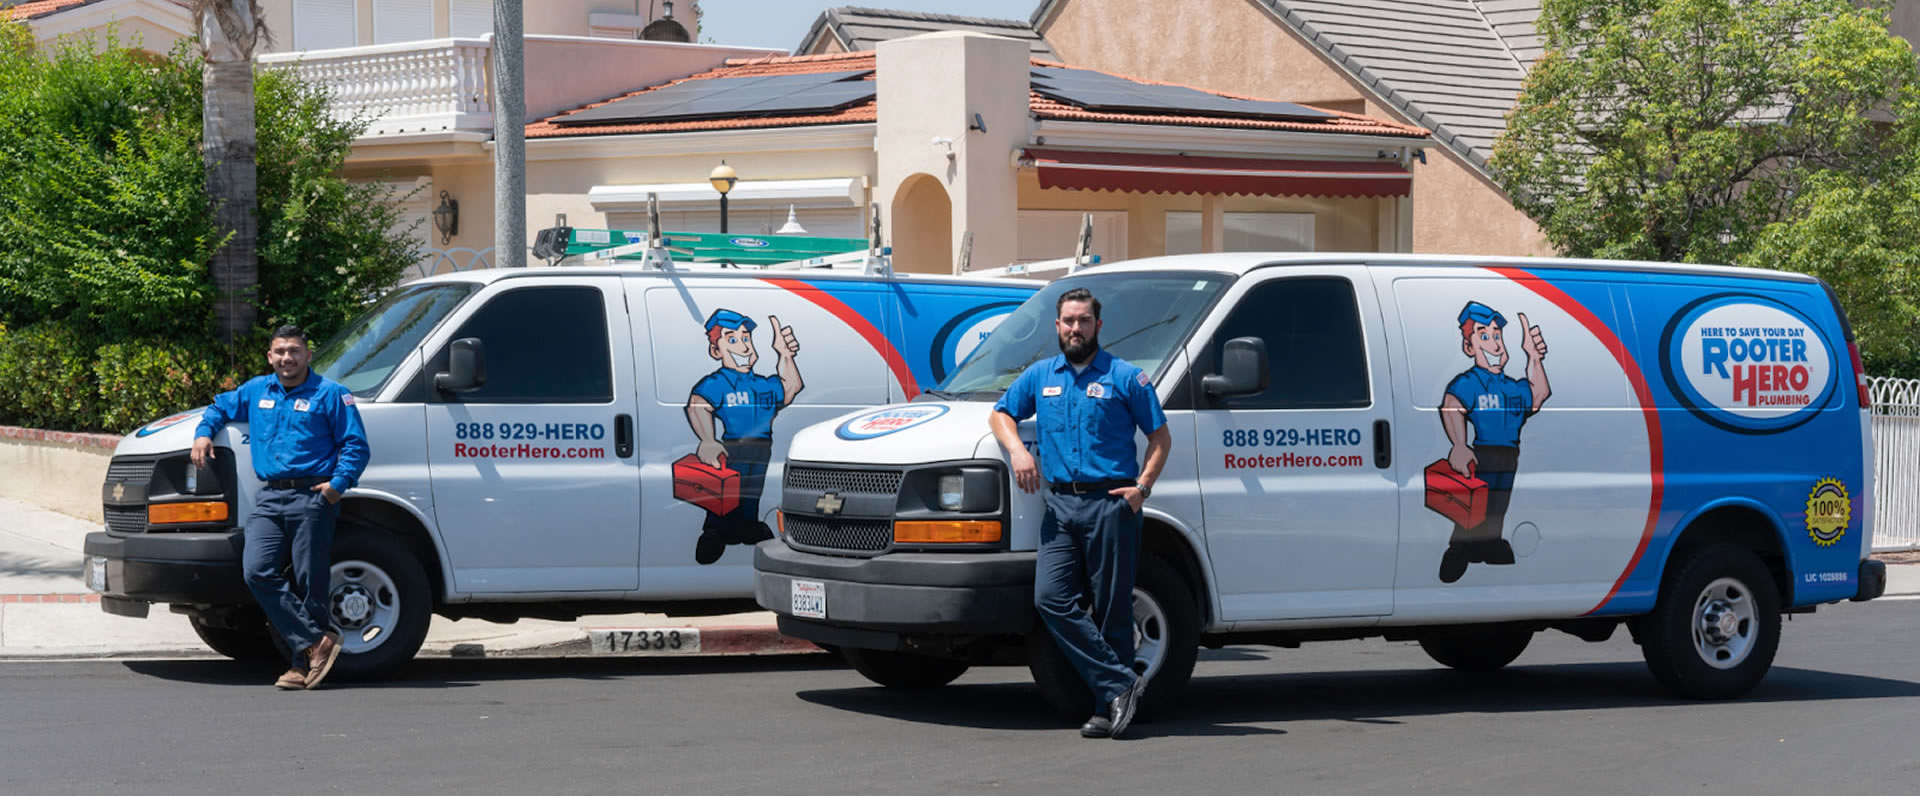 Drain Cleaning in Torrance